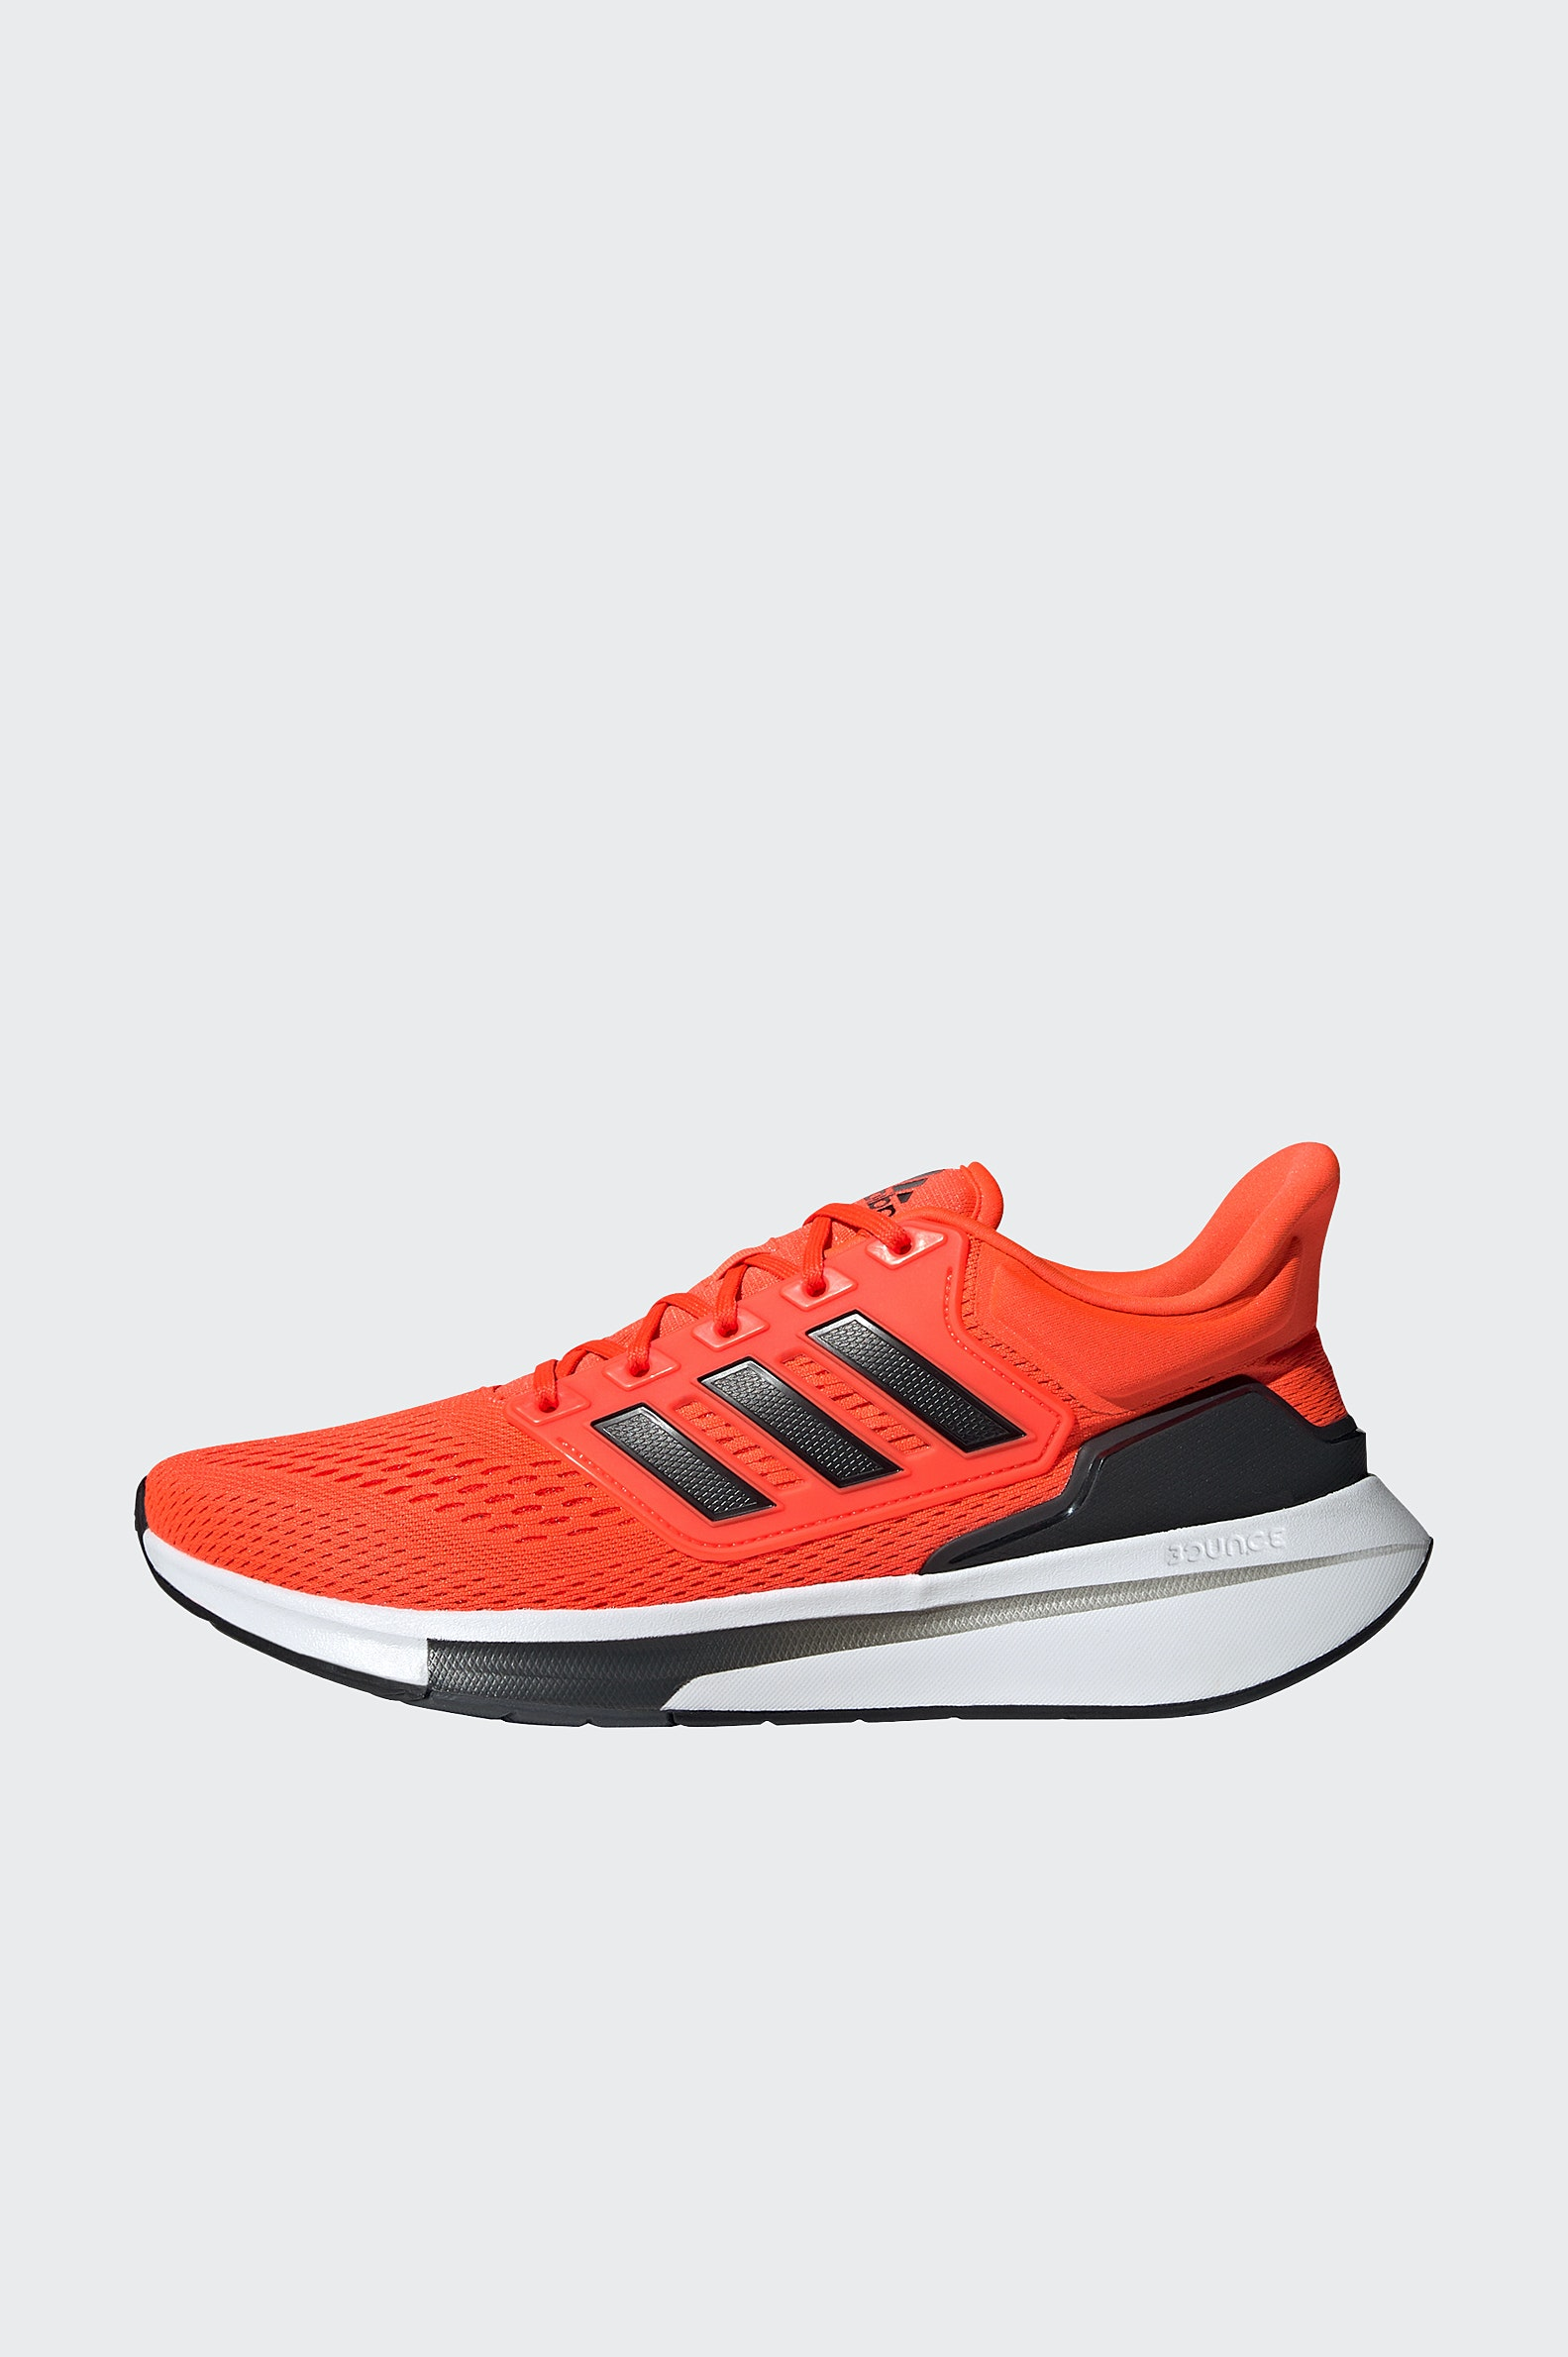 CHAUSSURES MODE ADIDAS EQ21 HOMME